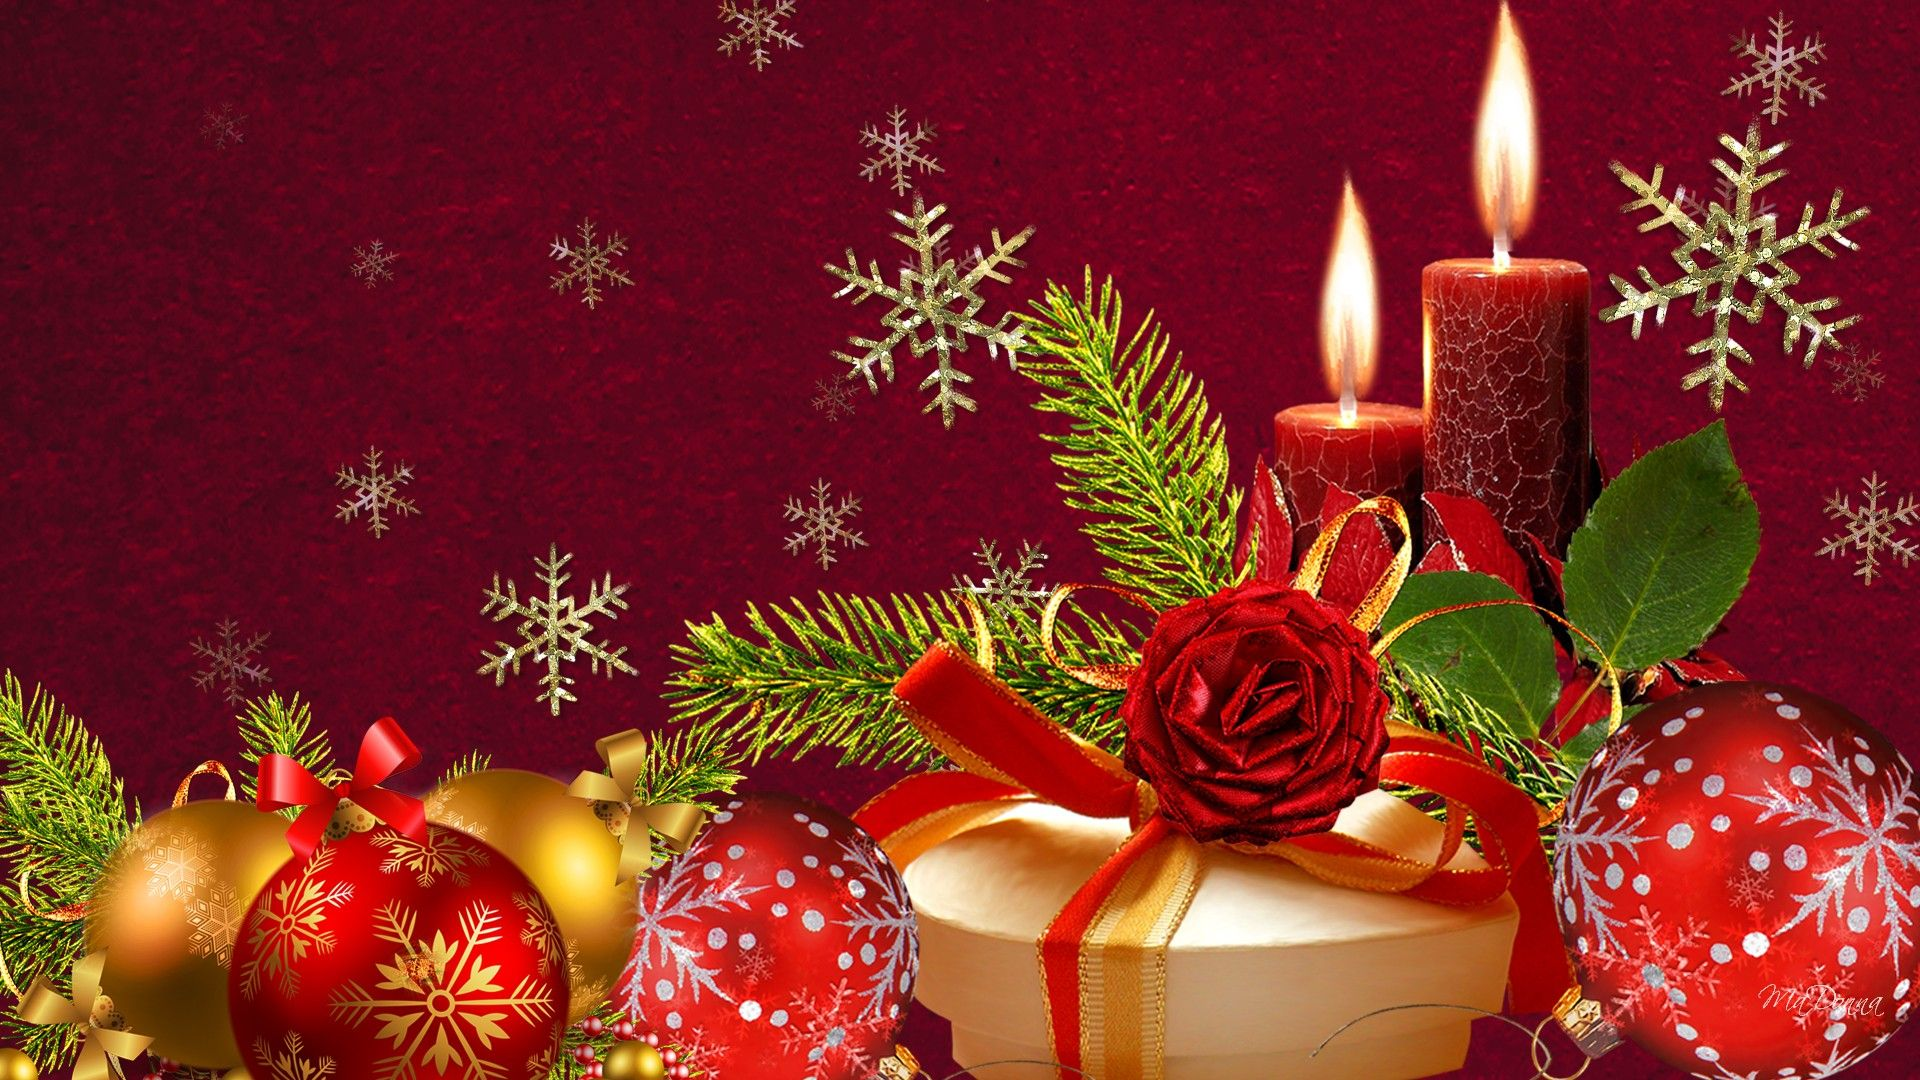 Christmas Red And Green Christmas Backgrounds Wallpapers